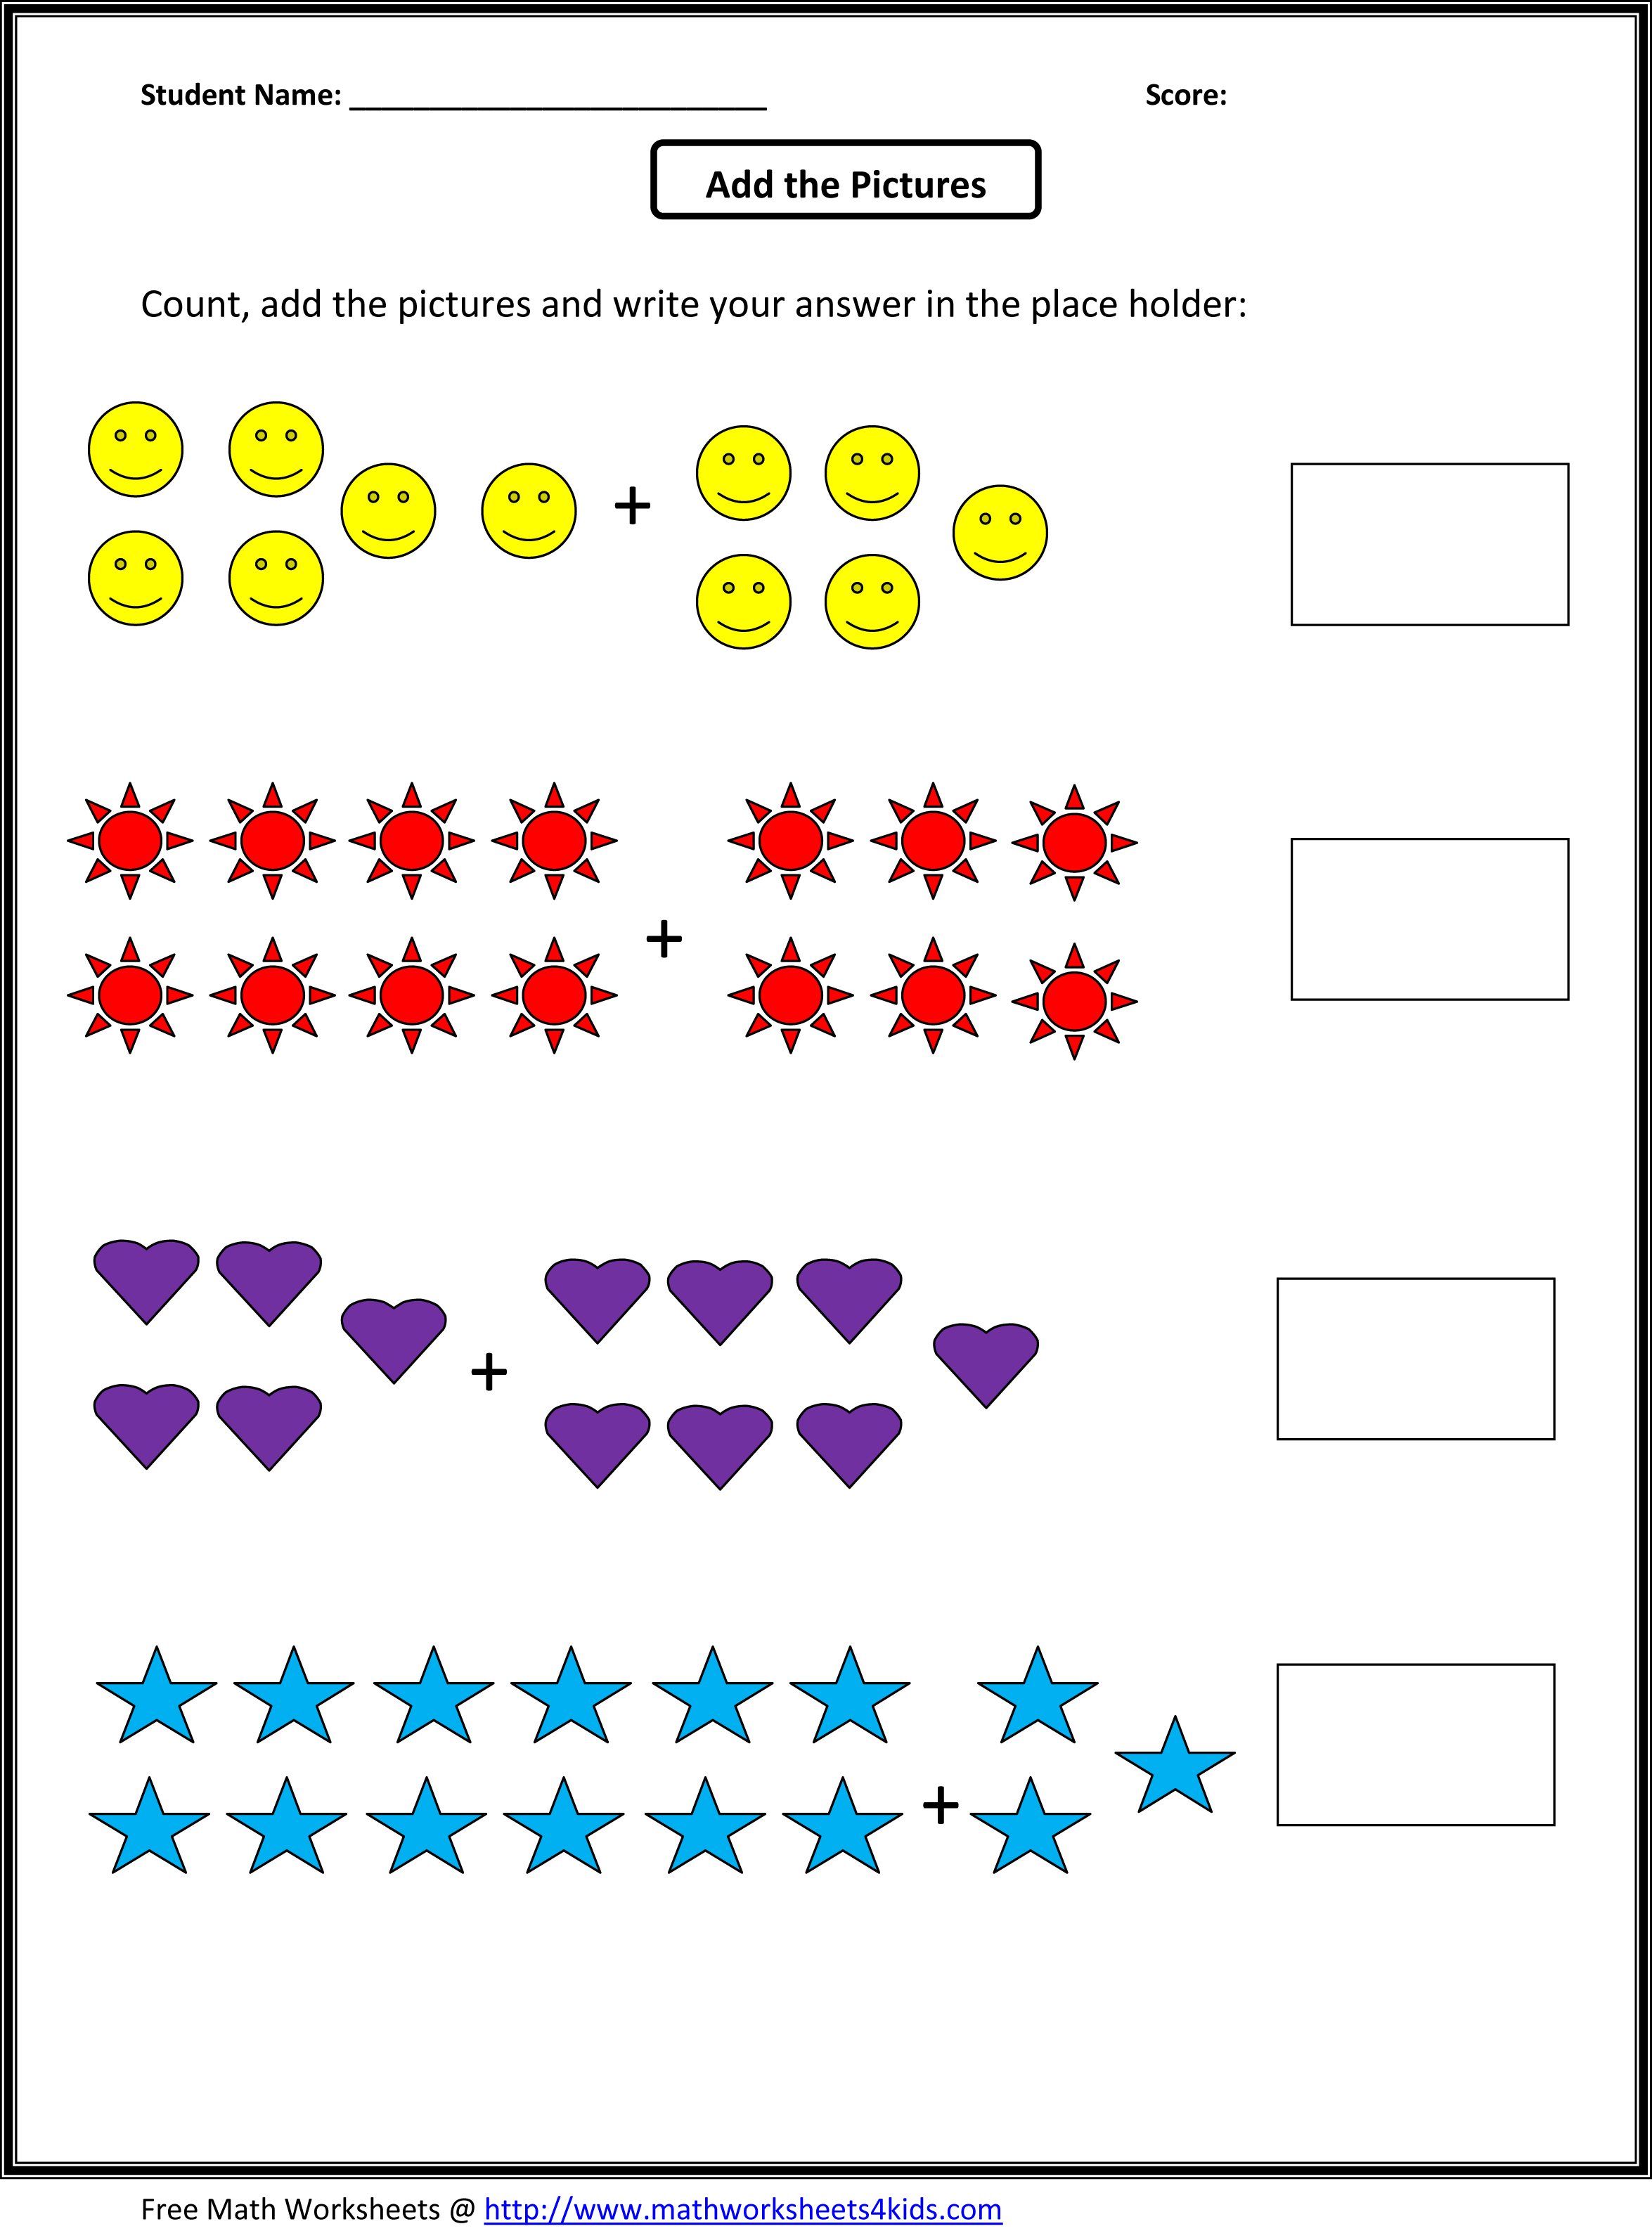 Weirdmailus  Unusual Grade  Maths Worksheet  Reocurent With Handsome Math Worksheets For St Grade Free  Reocurent With Nice Simplest Form Fraction Worksheets Also Analogies Worksheets Th Grade In Addition Setting Career Goals Worksheet And Mixed Division Worksheets As Well As Math Symbols Worksheet Additionally Graphing Activity Worksheet From Reocurentcom With Weirdmailus  Handsome Grade  Maths Worksheet  Reocurent With Nice Math Worksheets For St Grade Free  Reocurent And Unusual Simplest Form Fraction Worksheets Also Analogies Worksheets Th Grade In Addition Setting Career Goals Worksheet From Reocurentcom